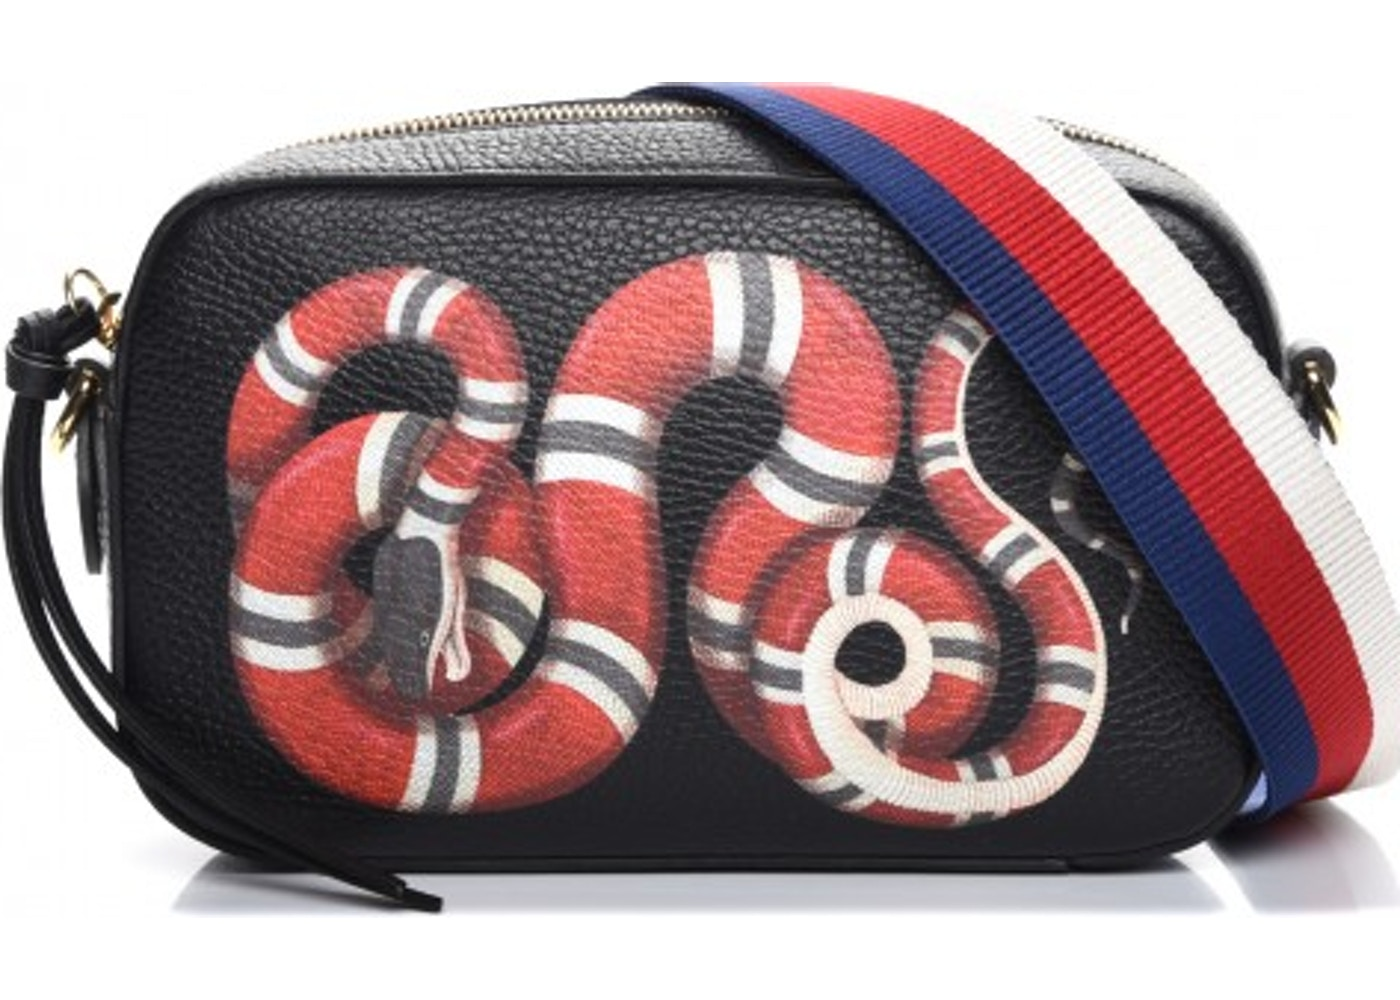 c045bb8dc81a Gucci Merveilles Camera Bag King Snake Print Small Black/Red/Blue ...